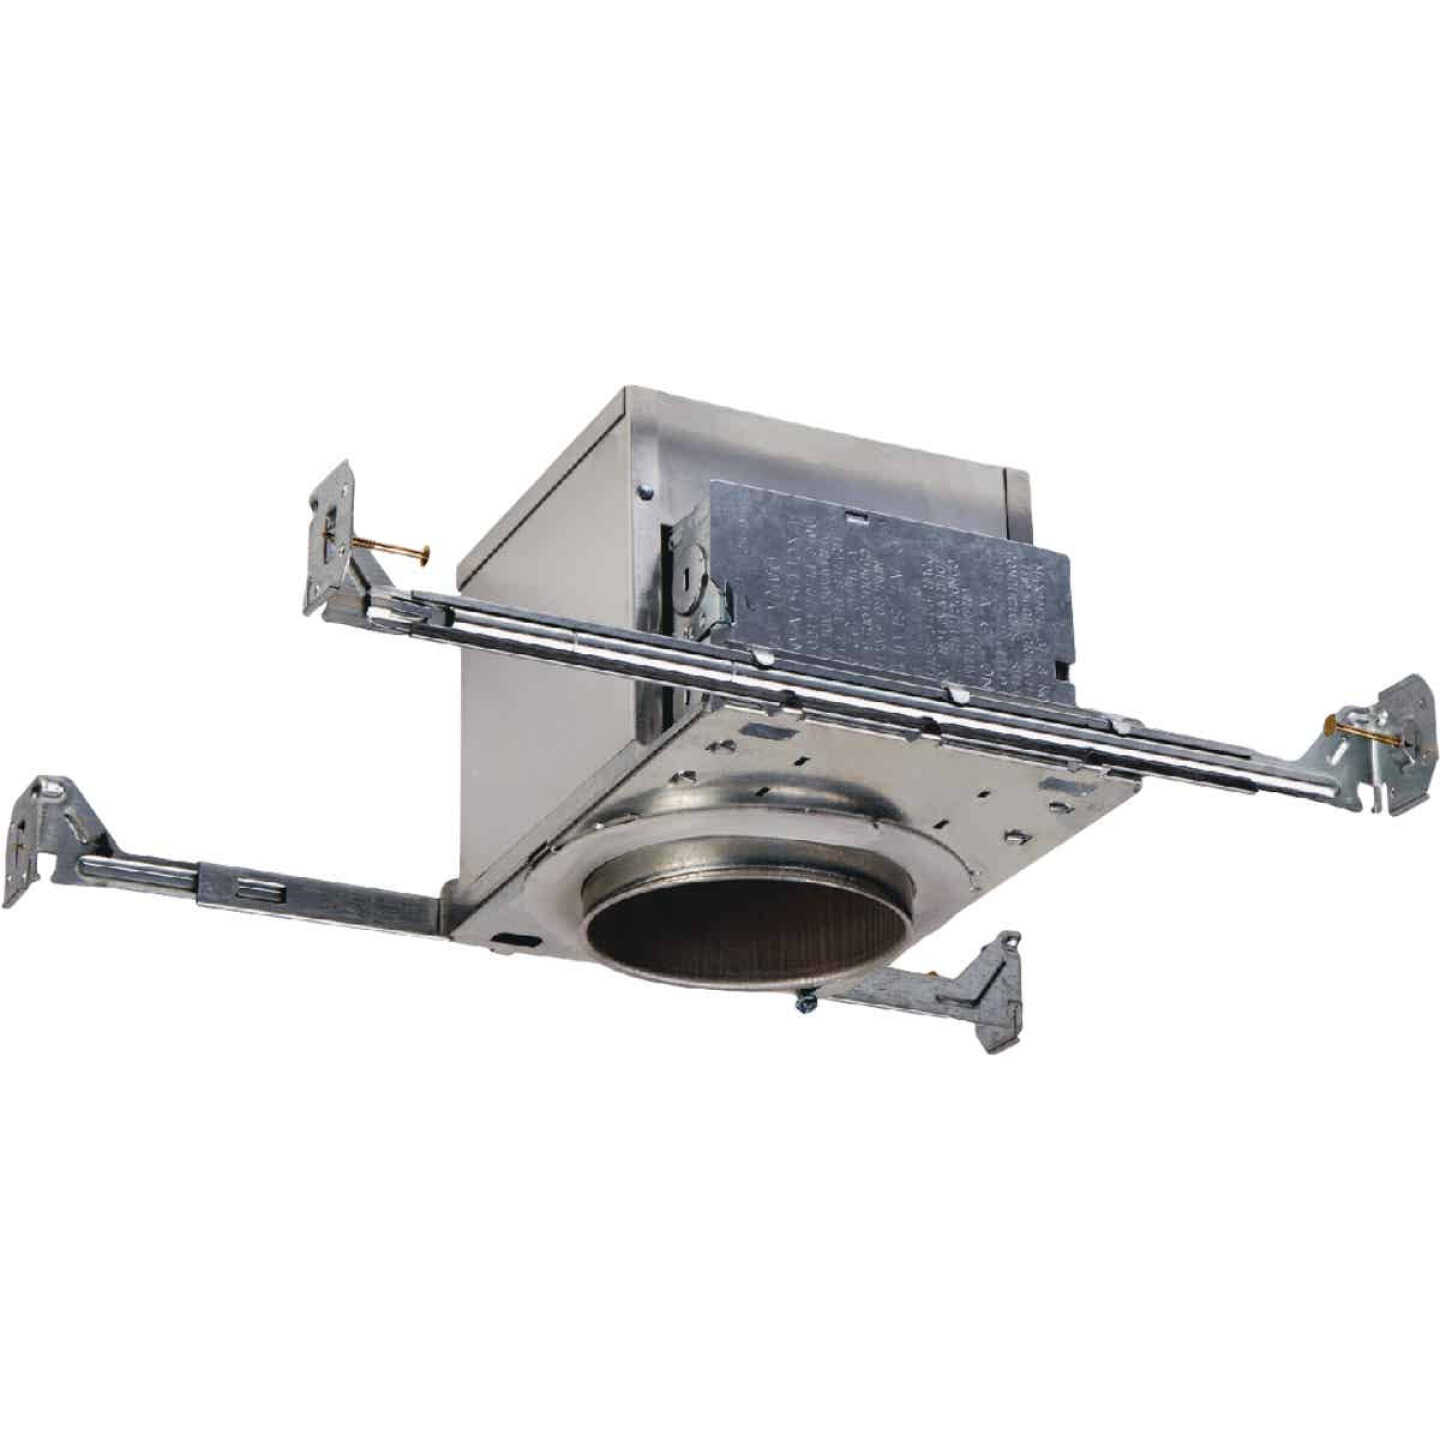 Halo Air-Tite 4 In. New Construction IC/Non-IC Rated Recessed Light Fixture with Adjustable Socket Bracket Image 1